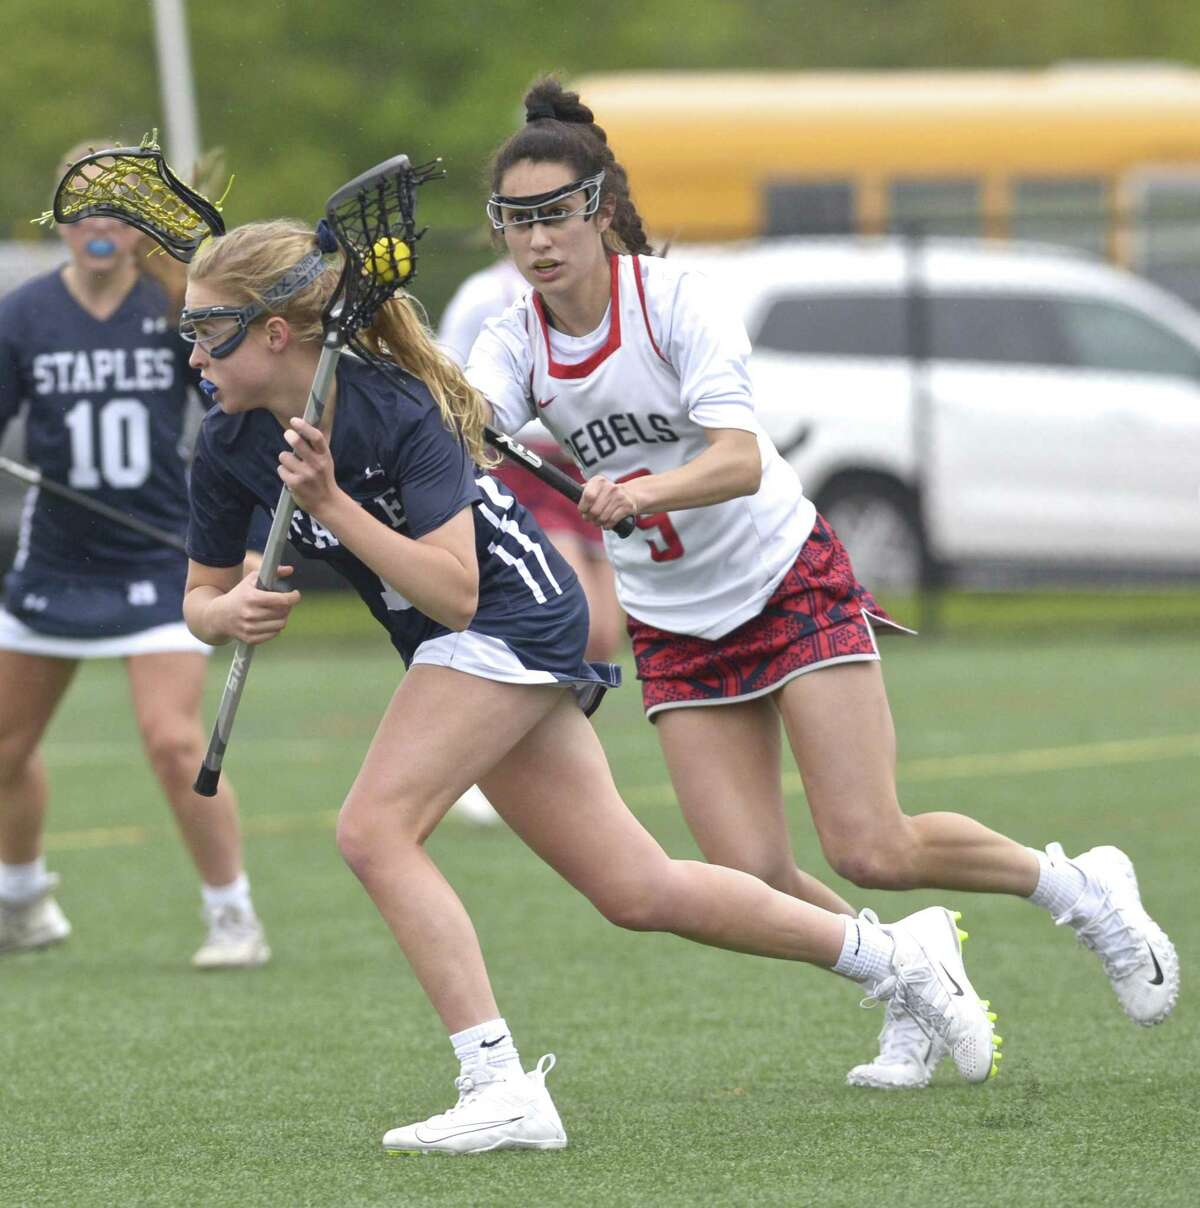 New Fairfield's Katelyn Sousa, right, defends Staples' Ellen Fair during Tuesday's game at New Fairfield High School.